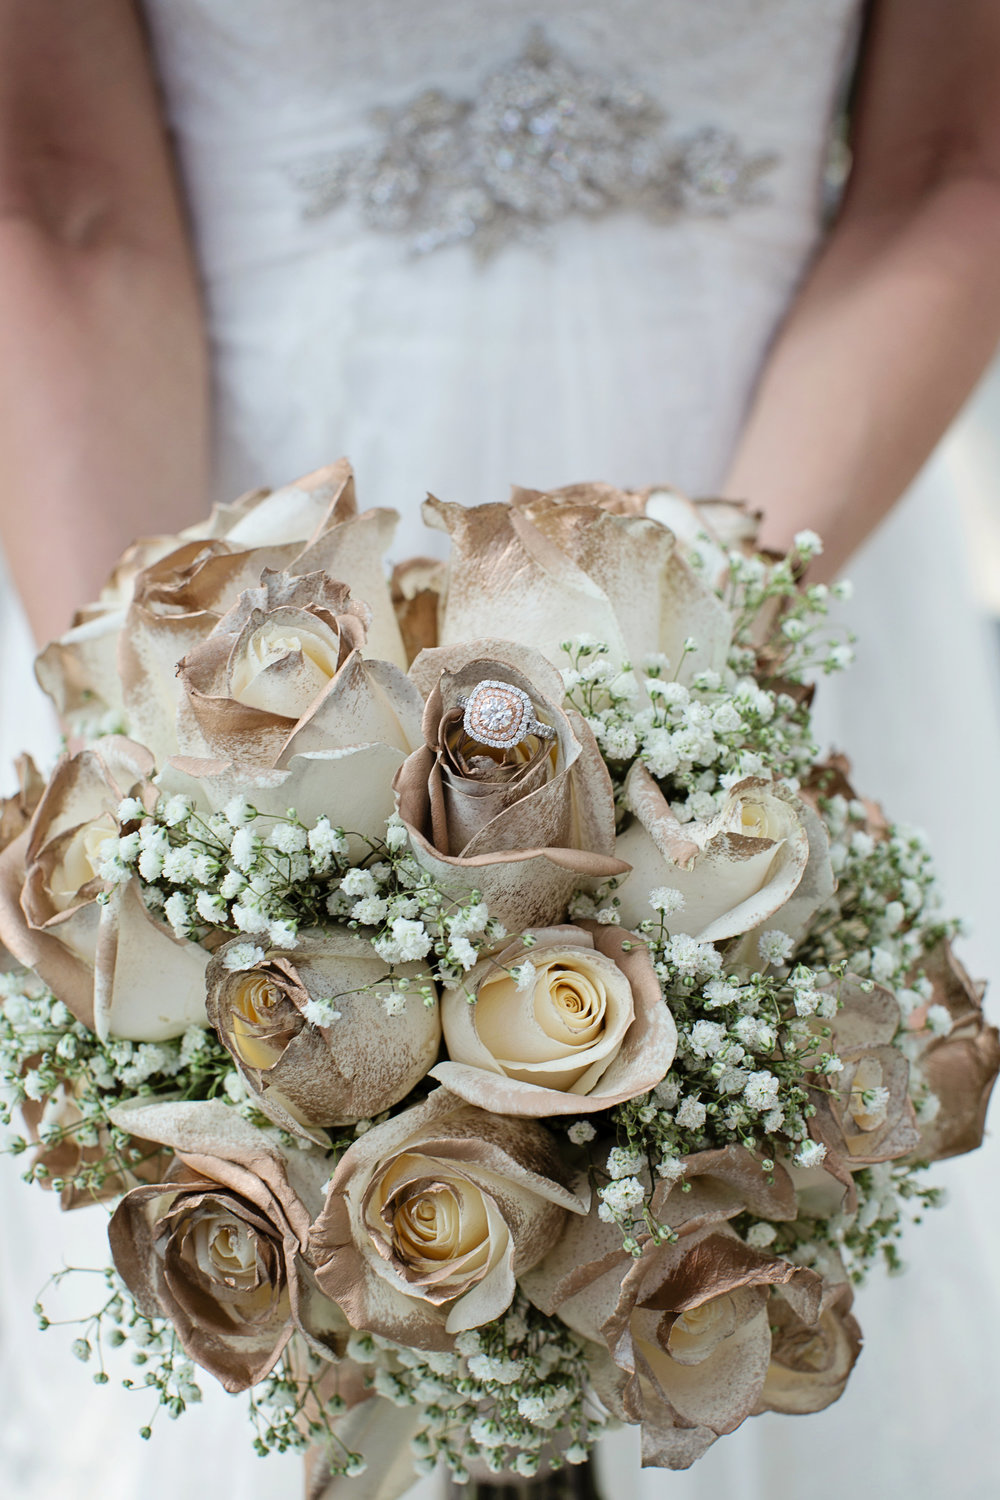 g-michael-salon-shoot-052914-bouquet-ring.jpg